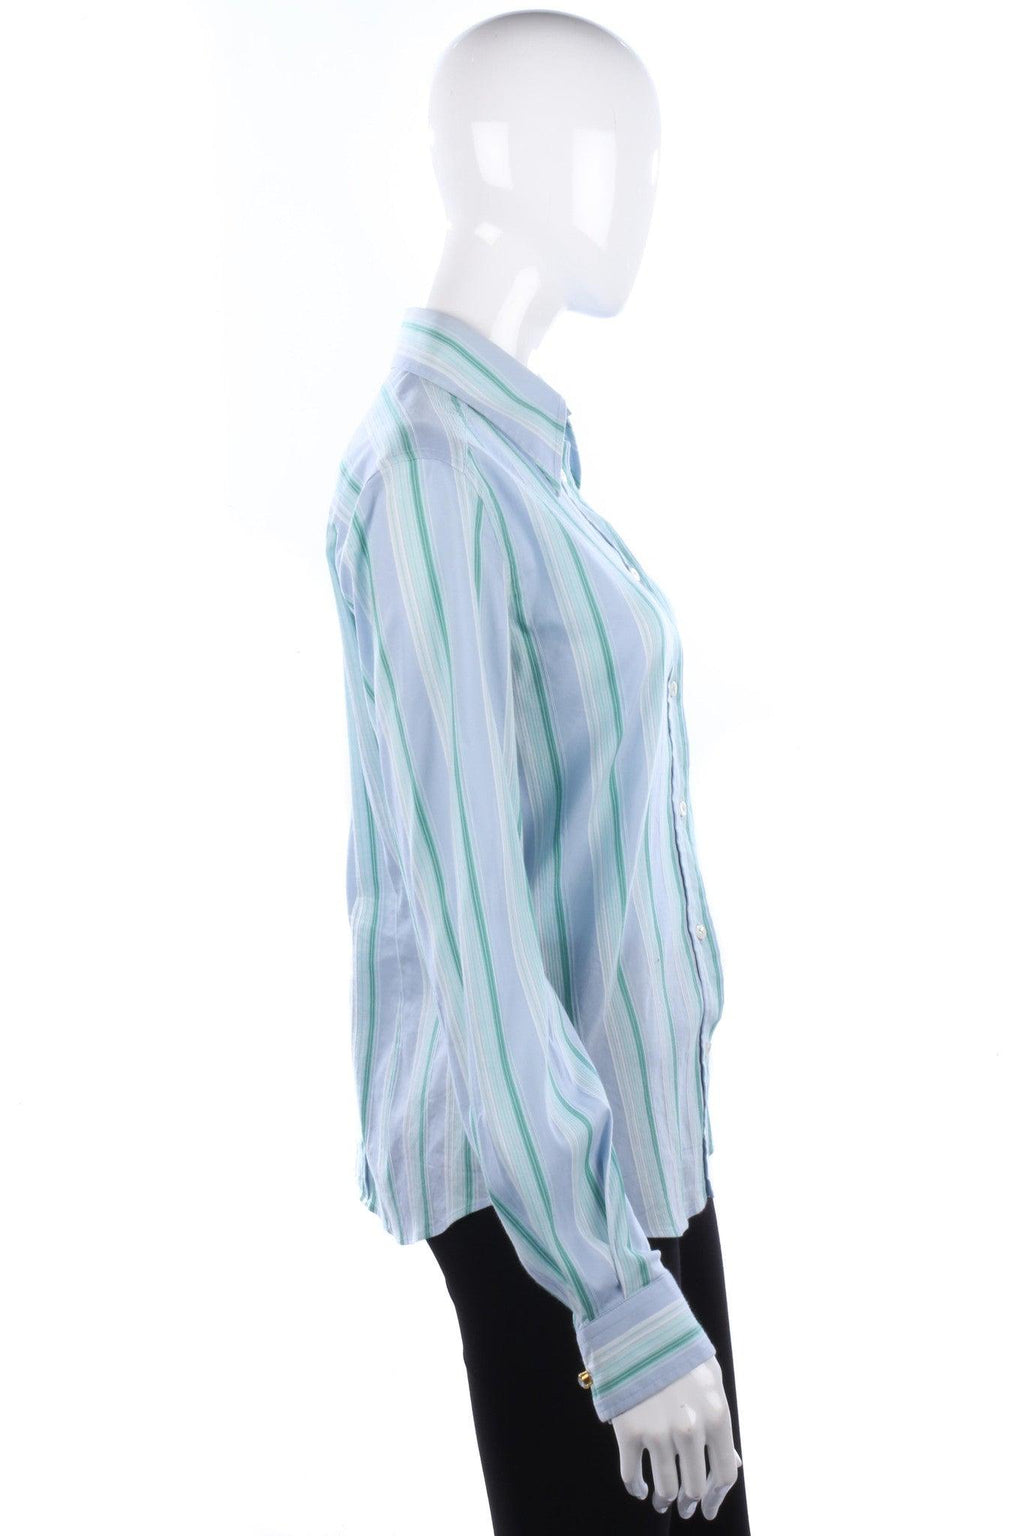 Dolce & Gabbana Ladies Shirt Cotton Blue and Green Stripes UK10